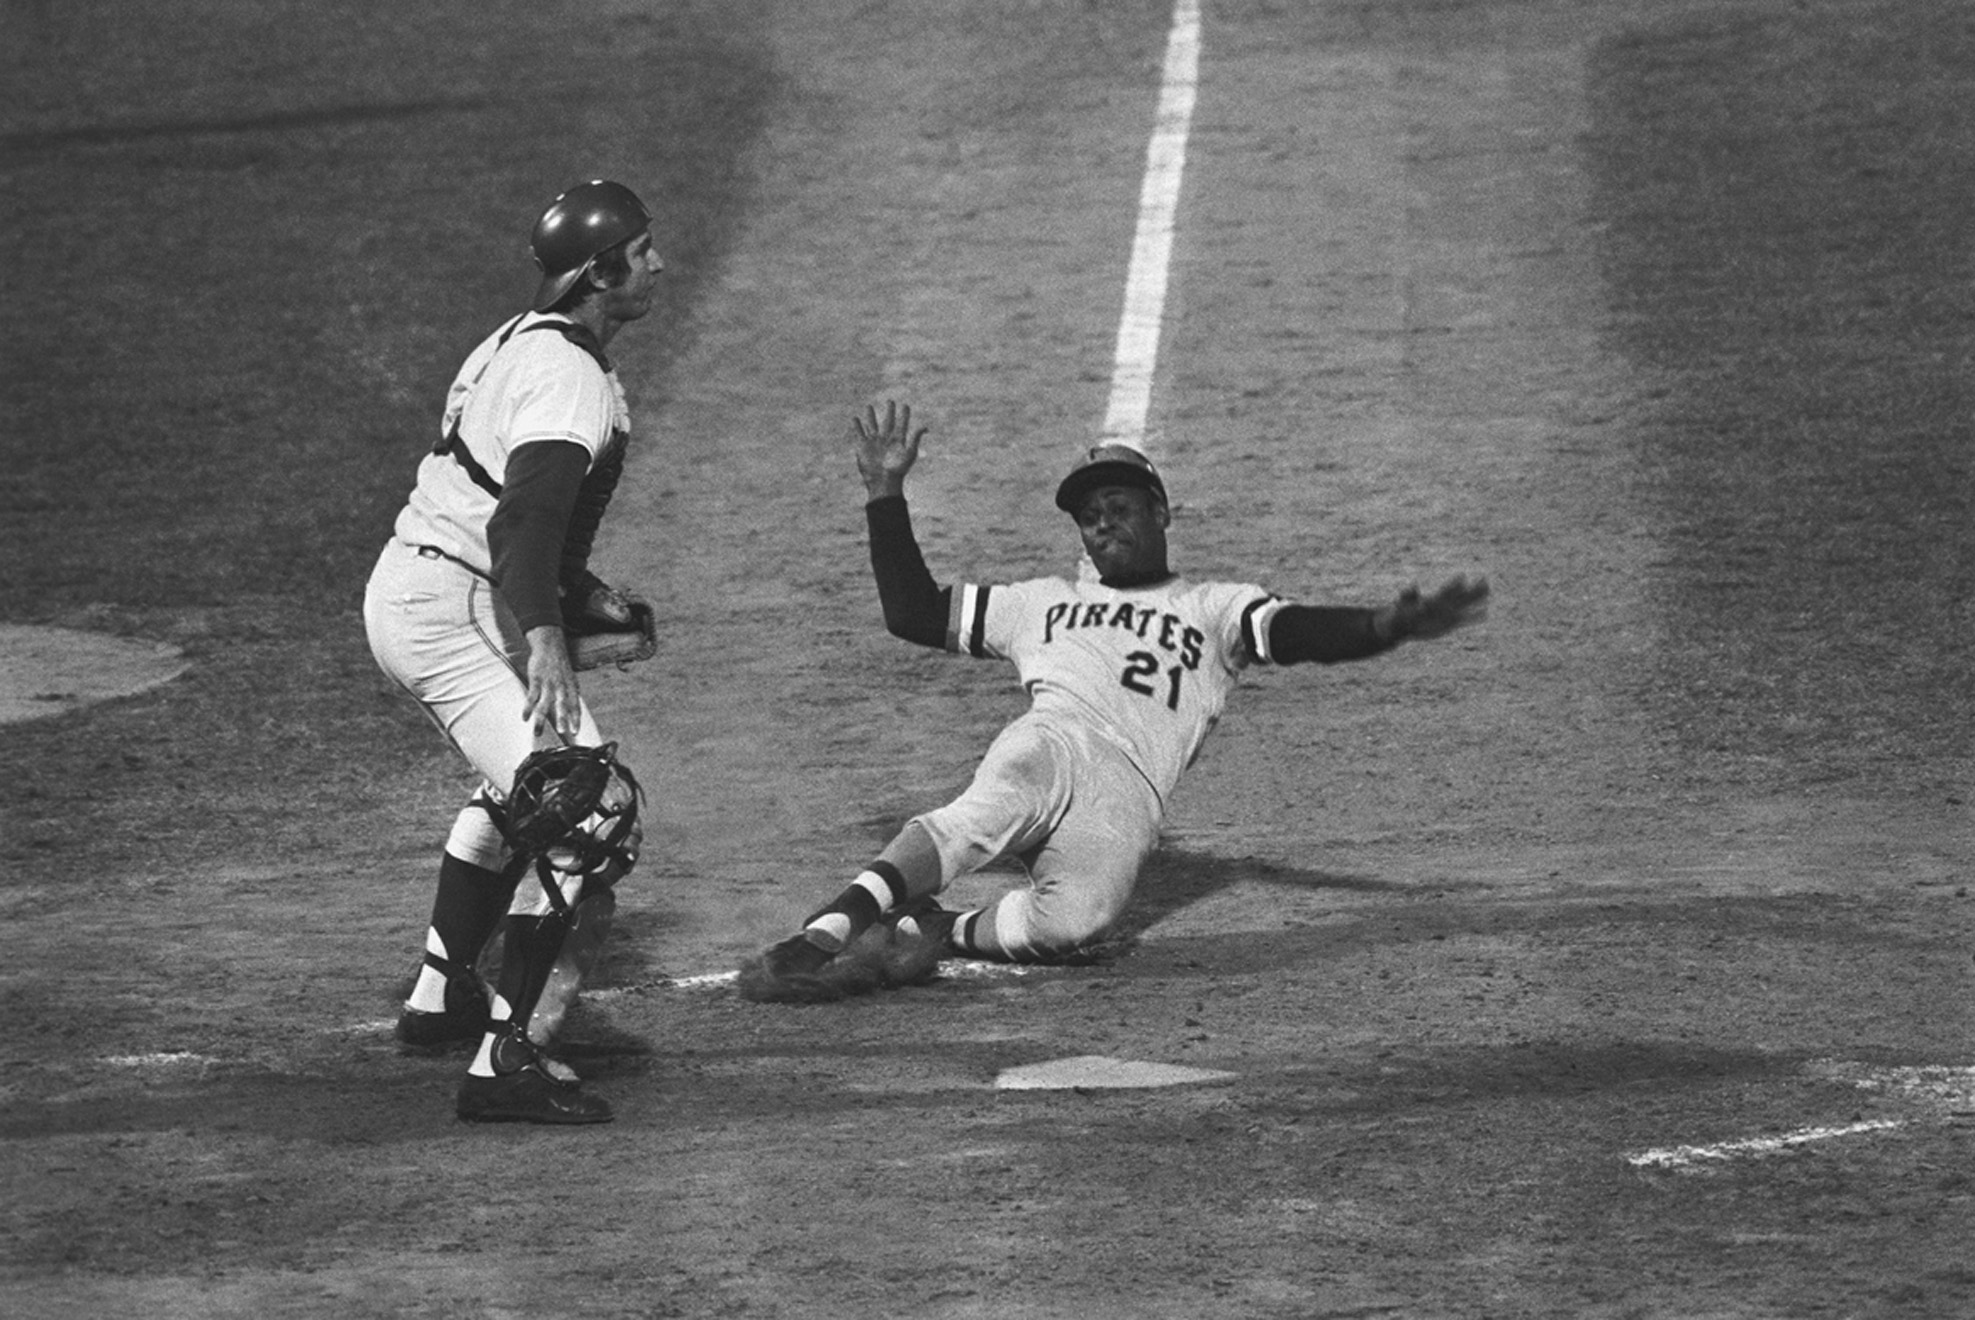 Roberto Clemente sliding into home base, 1971. Pittsburgh Pirates player Roberto Clemente became the first Latino elected to the Baseball Hall of Fame.